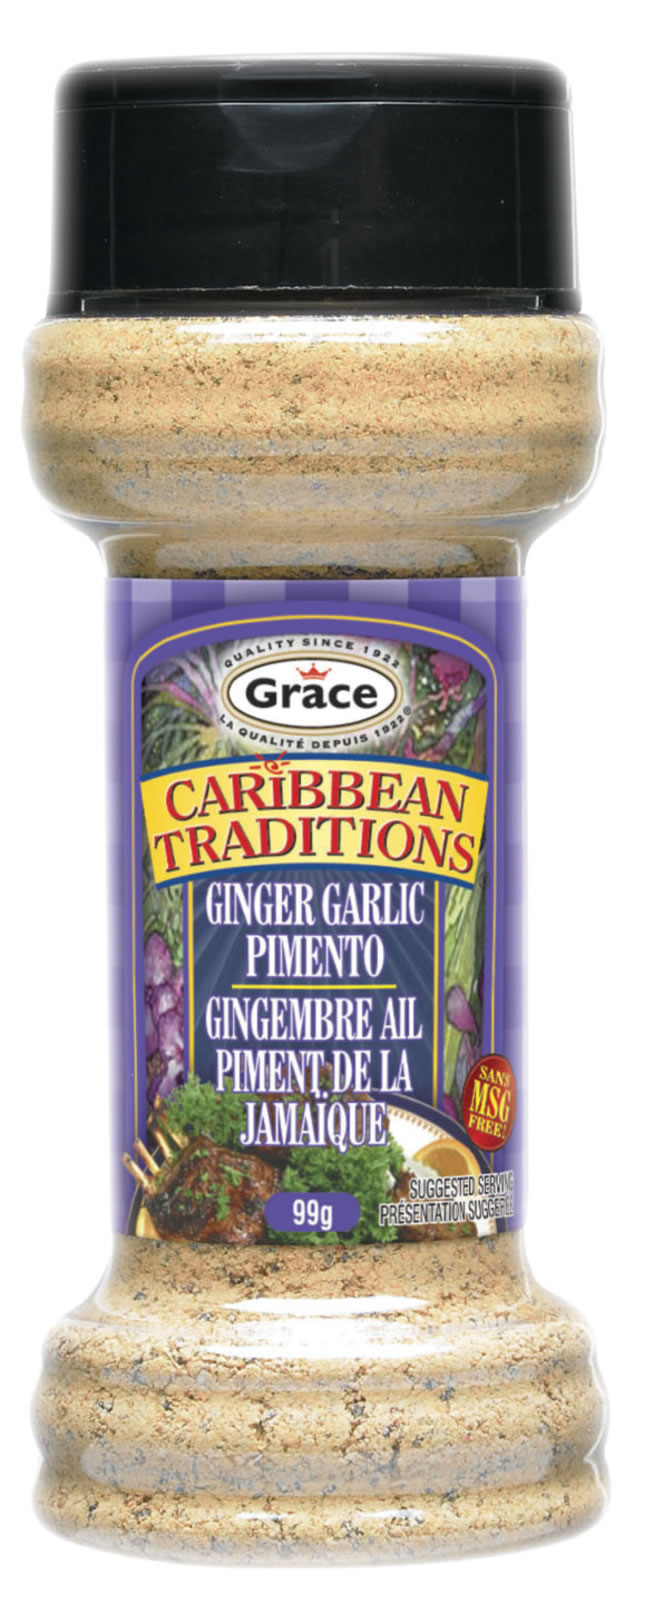 grace carribean ginger garlic pimento spice